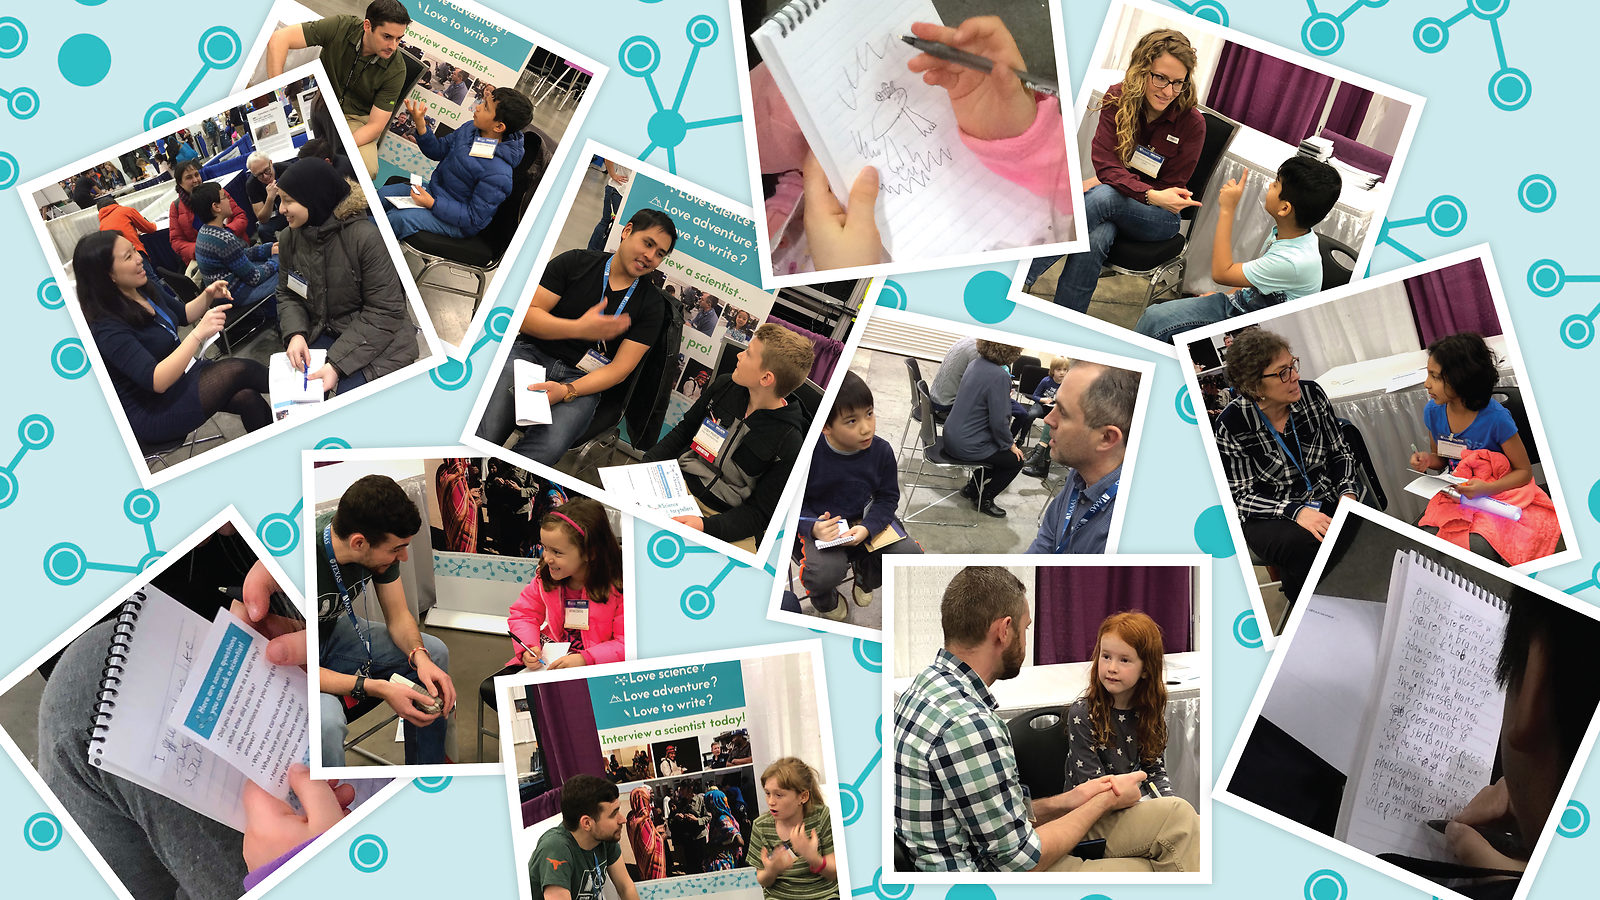 Collage of the Science Storytellers event